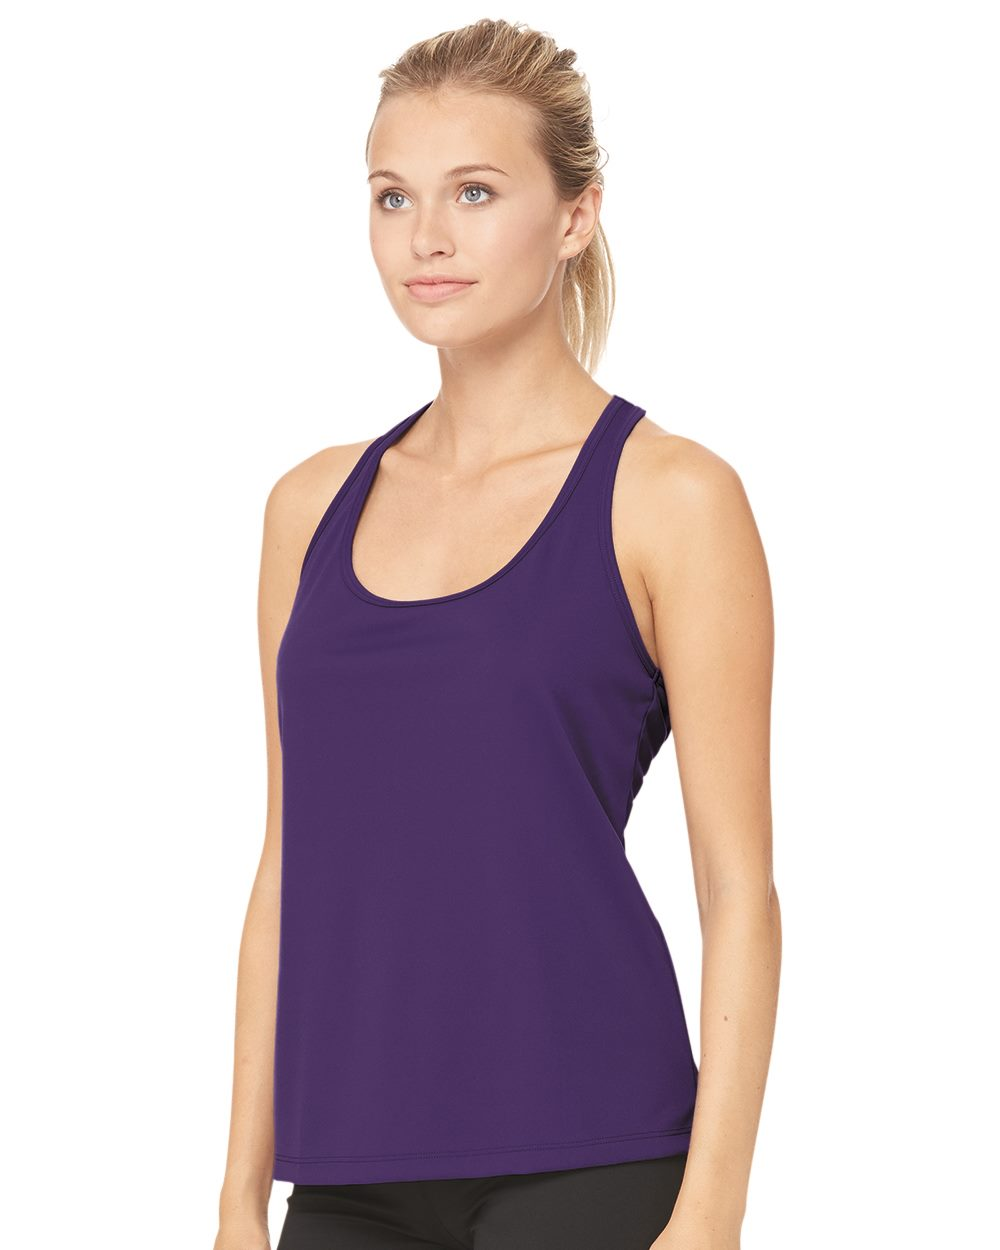 All Sport Women's Performance Racerback Tank